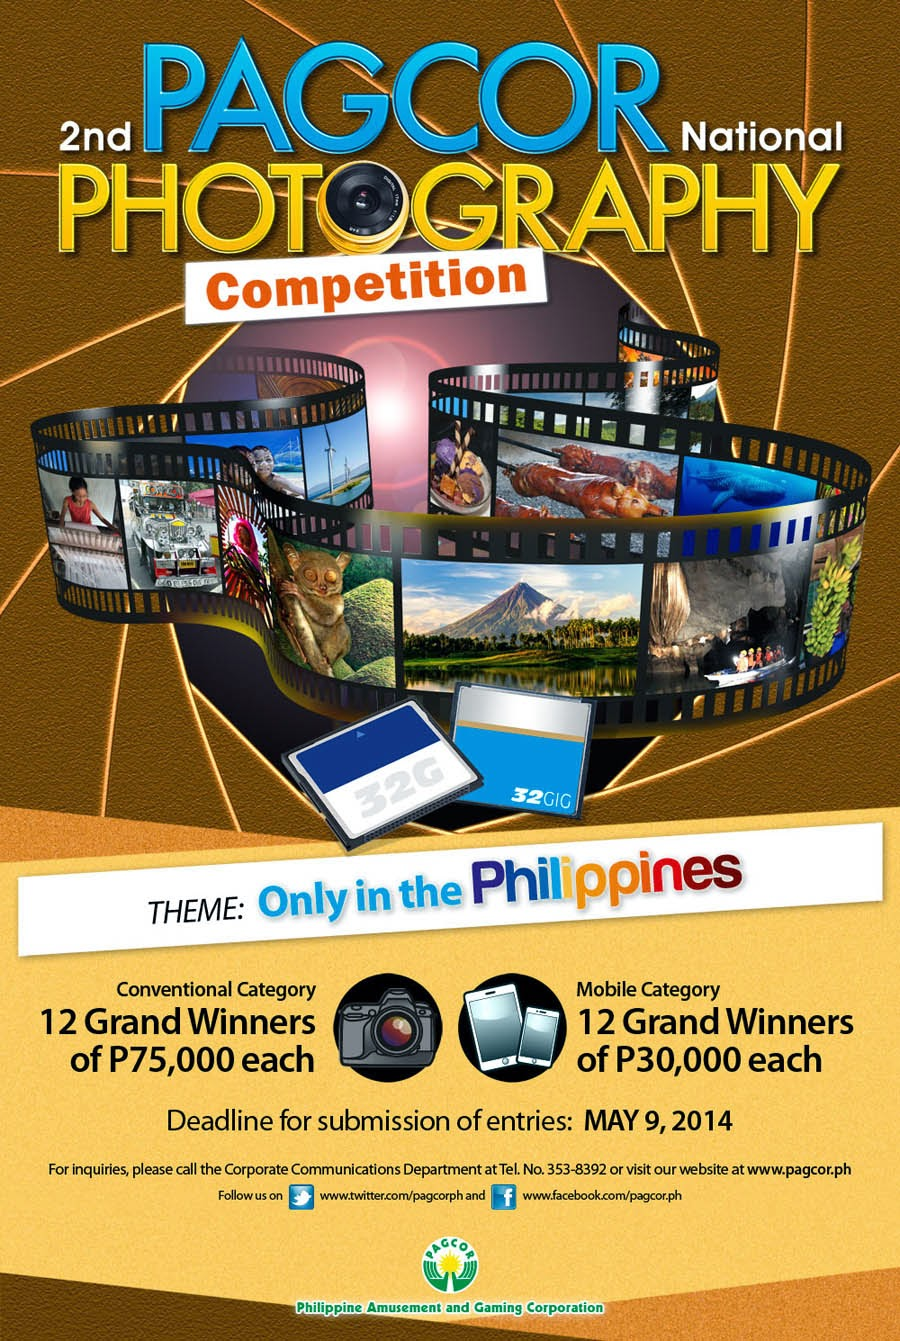 The 2nd PAGCOR National Photography Competition